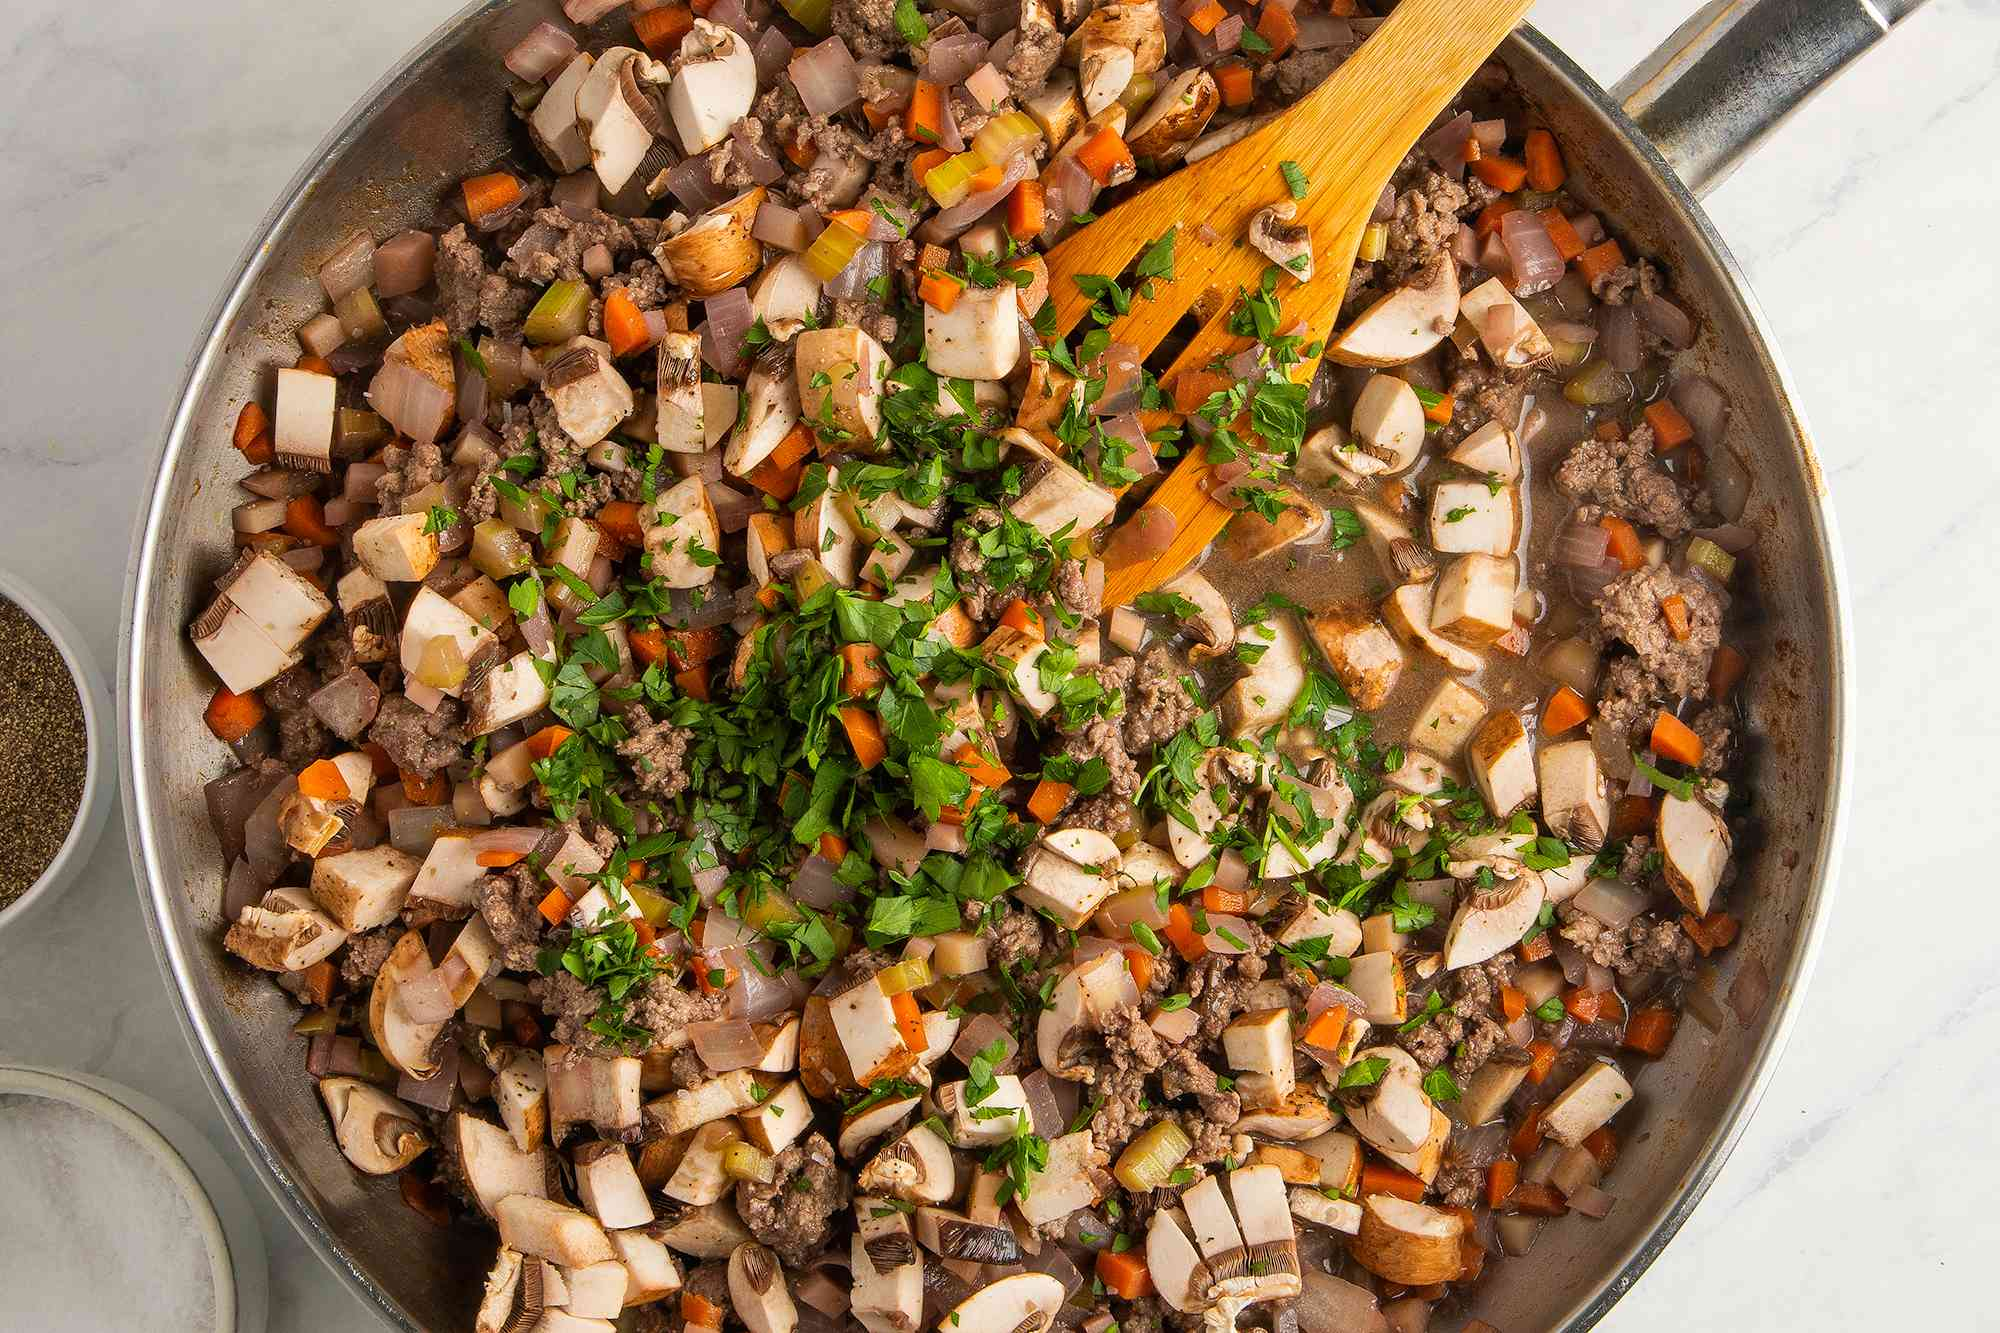 Add the remaining stock, mushrooms, and parsley to the pan with the meat and vegetables